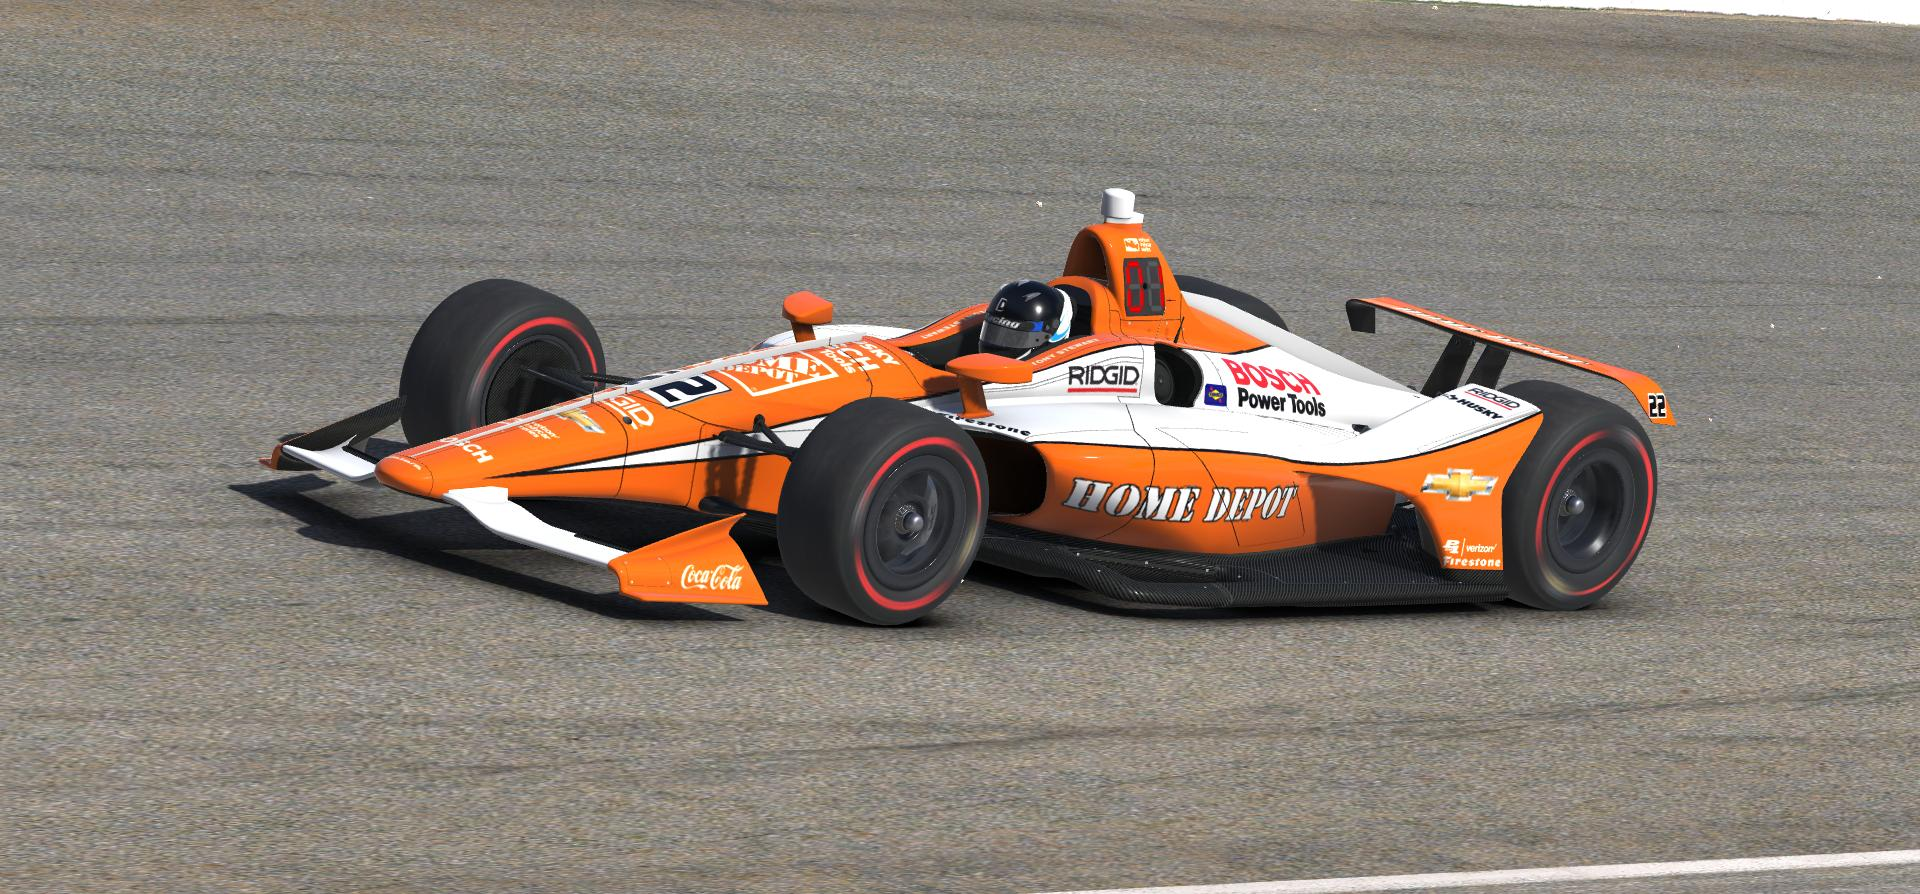 Preview of Tony Stewart 1999 Home Depot Indy 500 Car by Doug DeNise